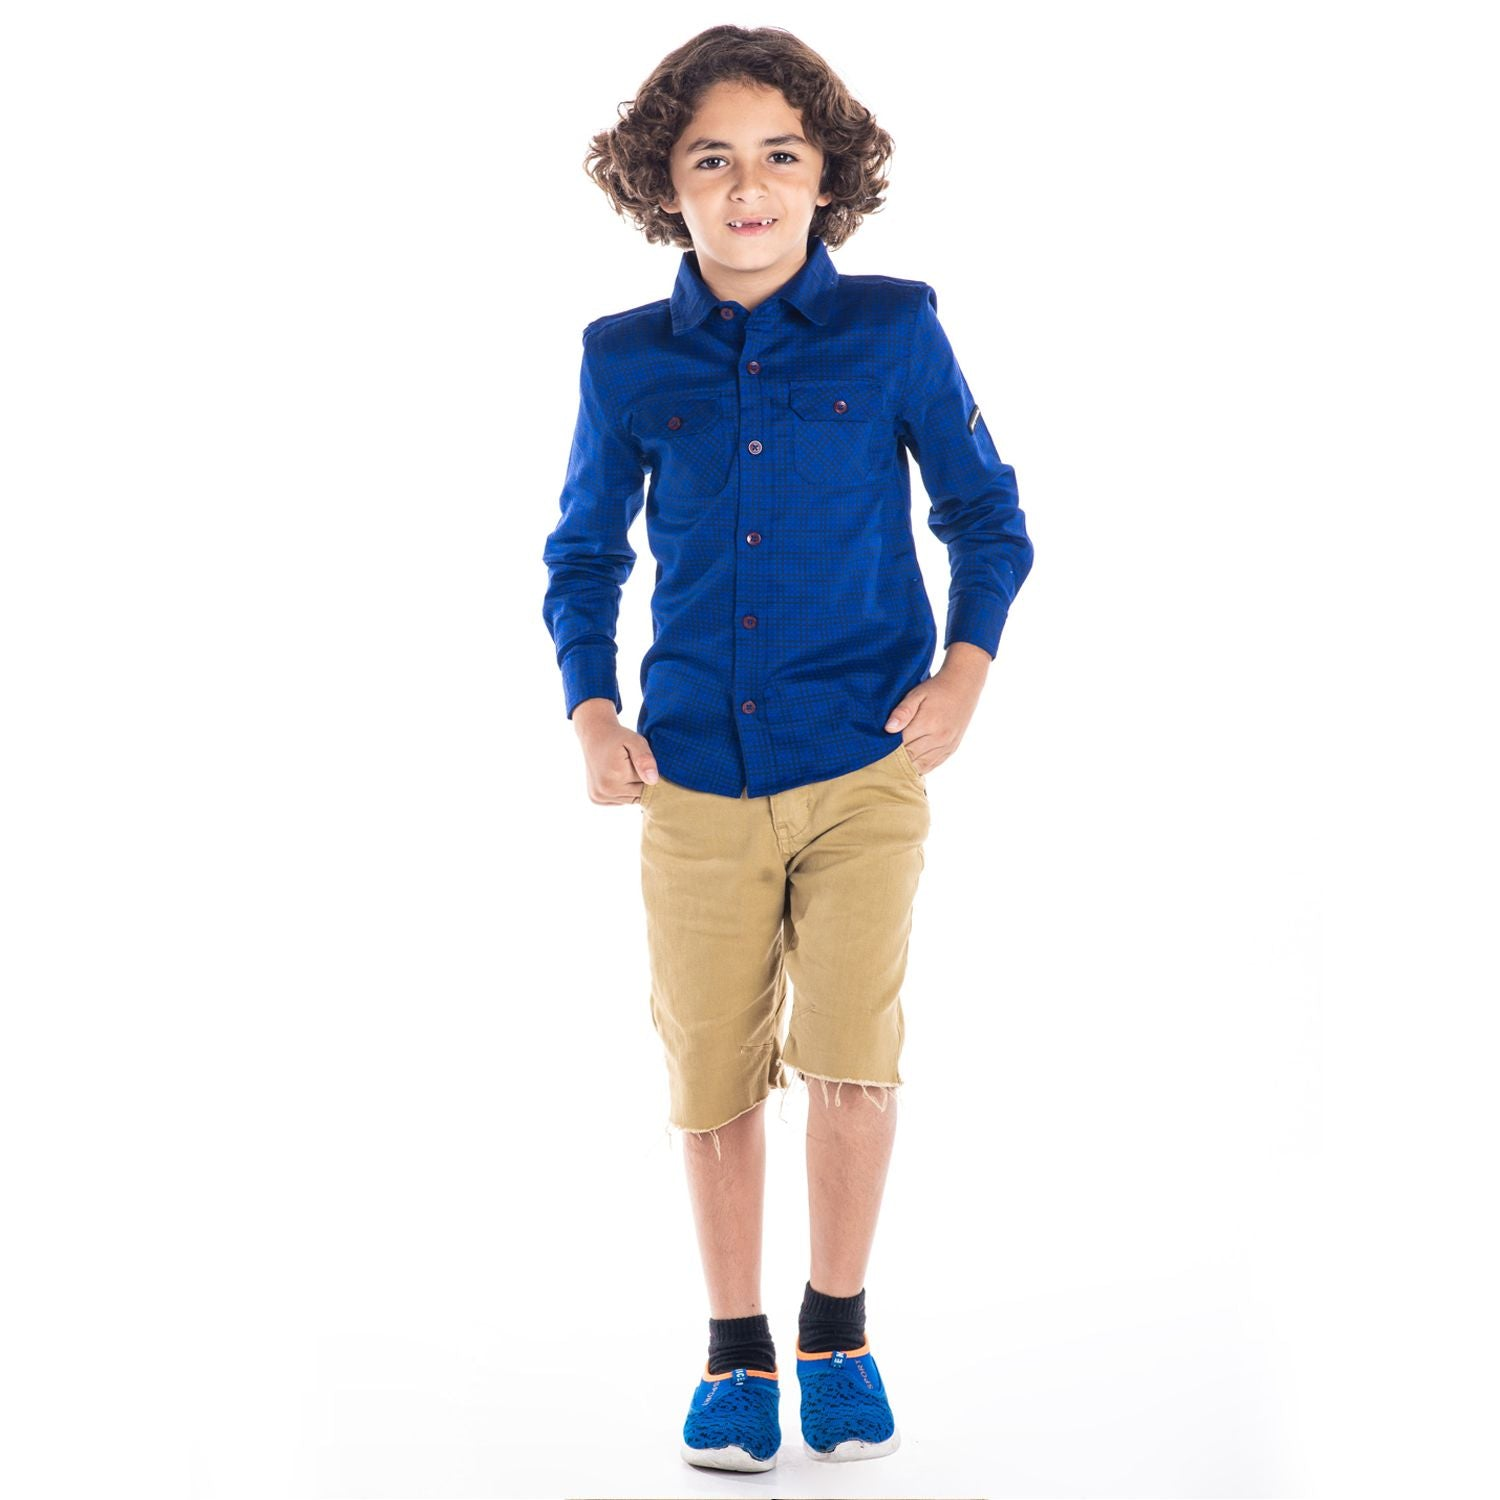 Young Shirt for Boys